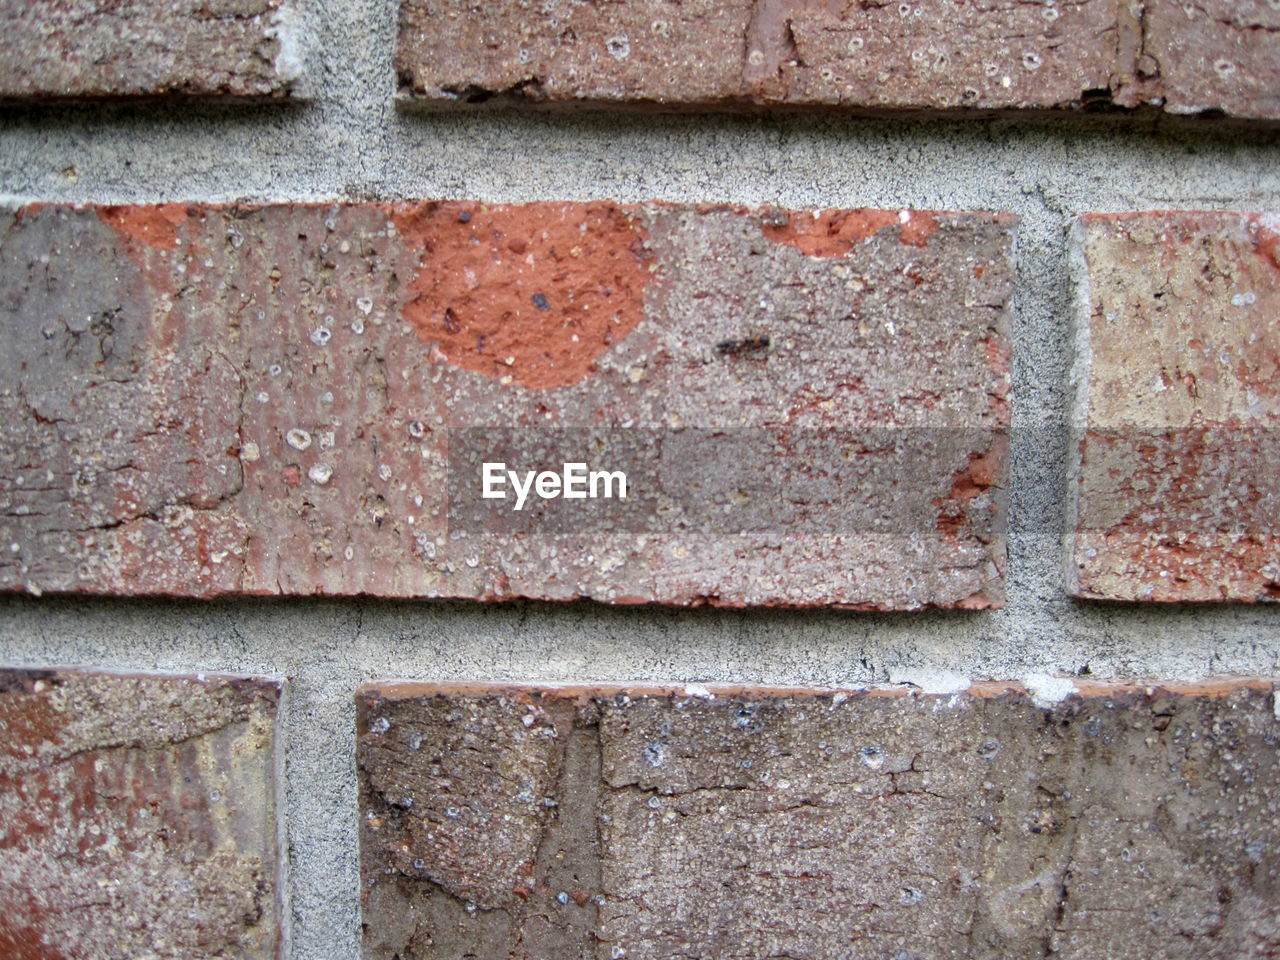 brick, brick wall, full frame, backgrounds, wall - building feature, wall, architecture, no people, built structure, textured, pattern, close-up, day, building exterior, rough, old, concrete, outdoors, red, emotion